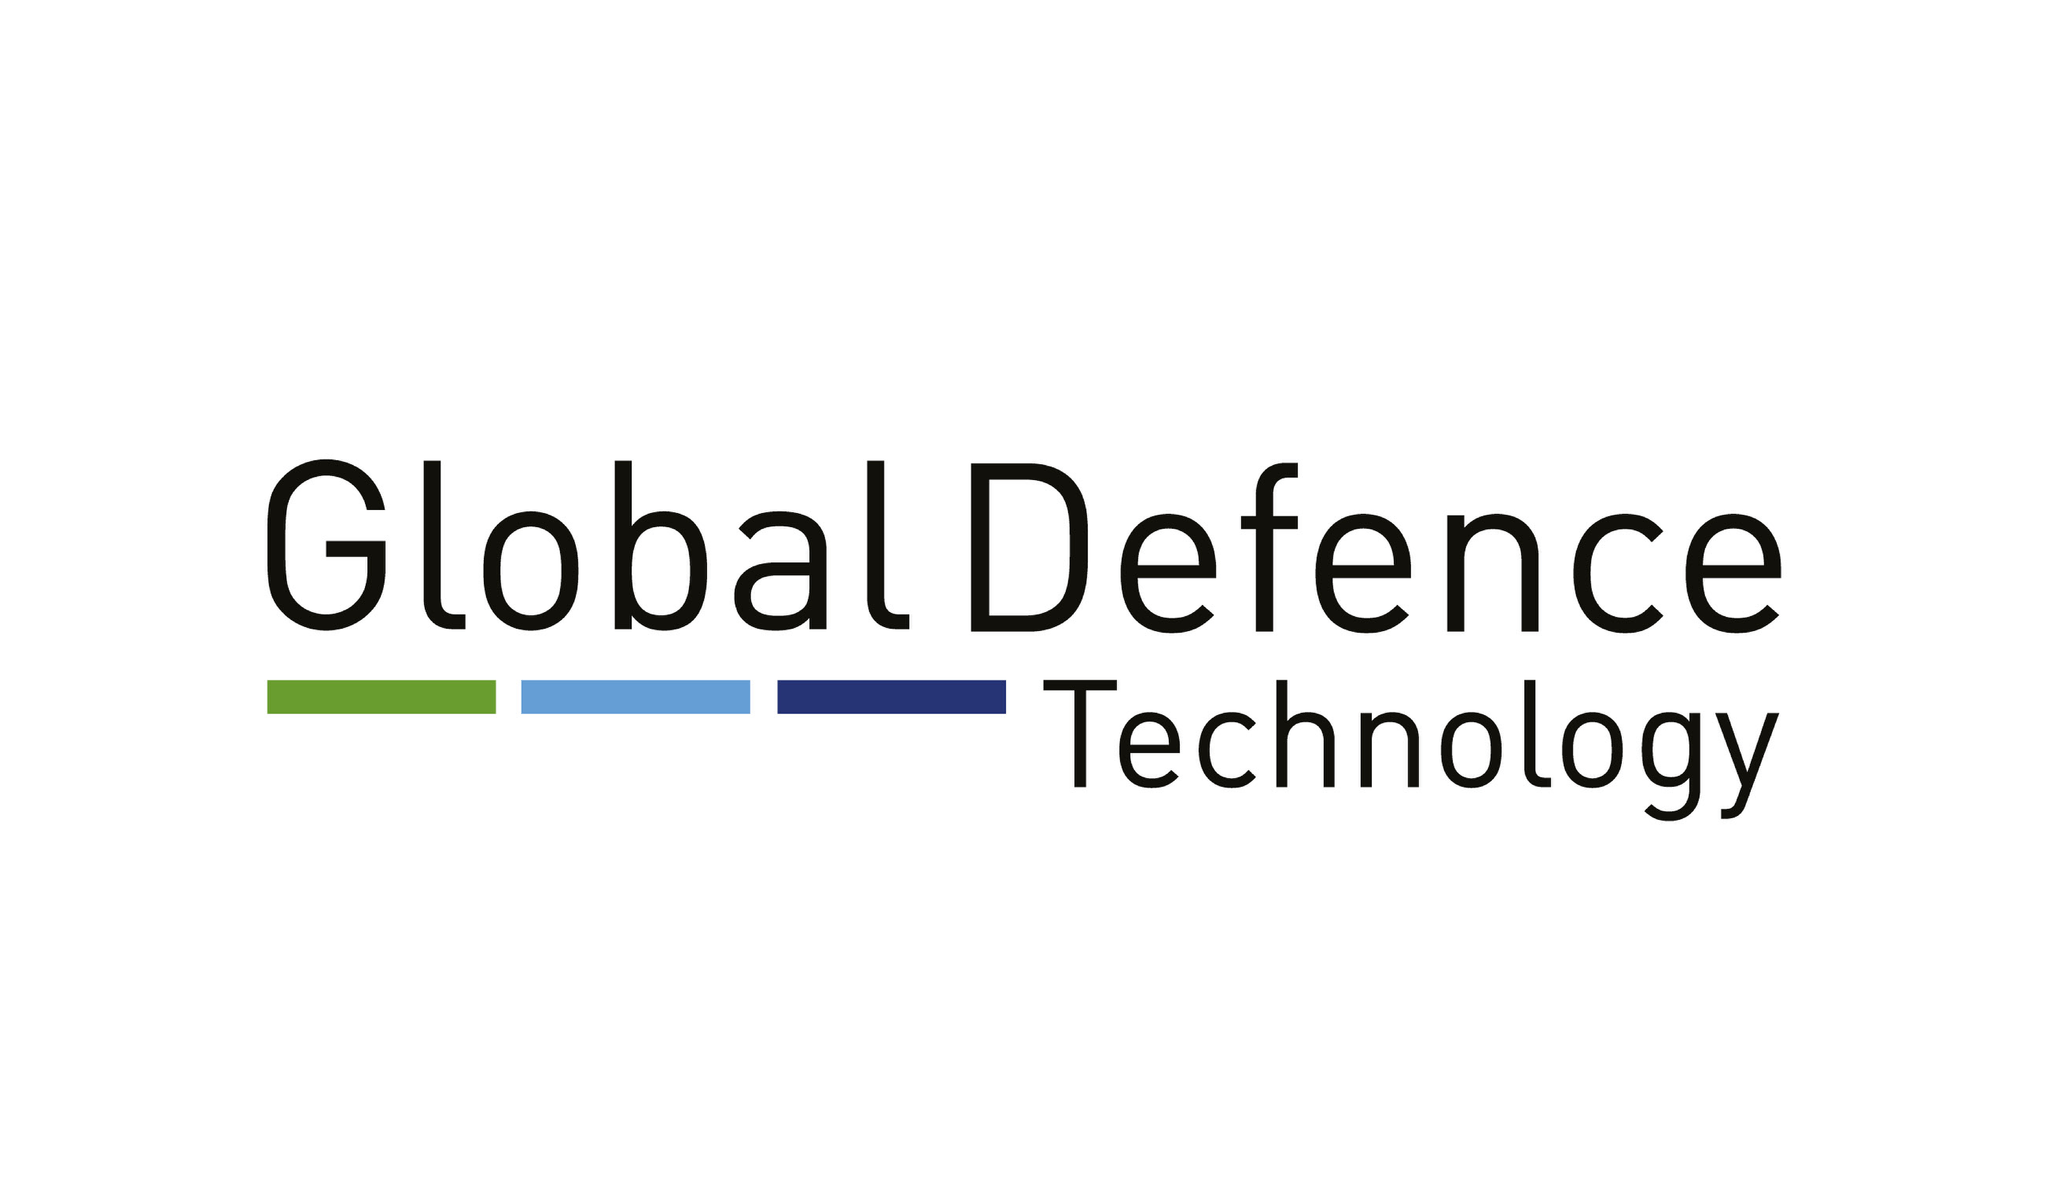 Global Defence Technology